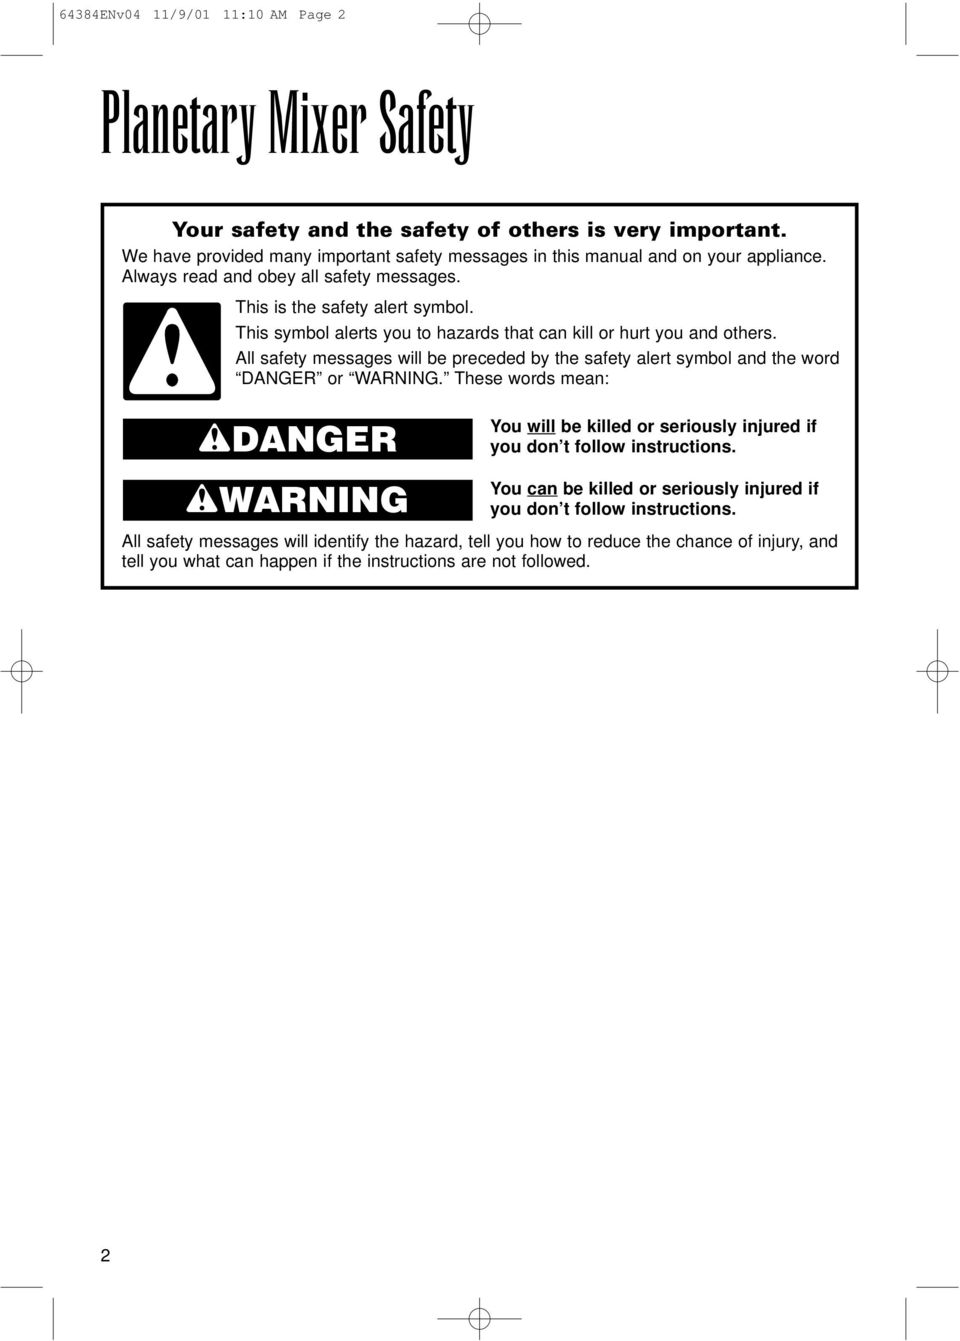 This symbol alerts you to hazards that can kill or hurt you and others. All safety messages will be preceded by the safety alert symbol and the word DANGER or WARNING.